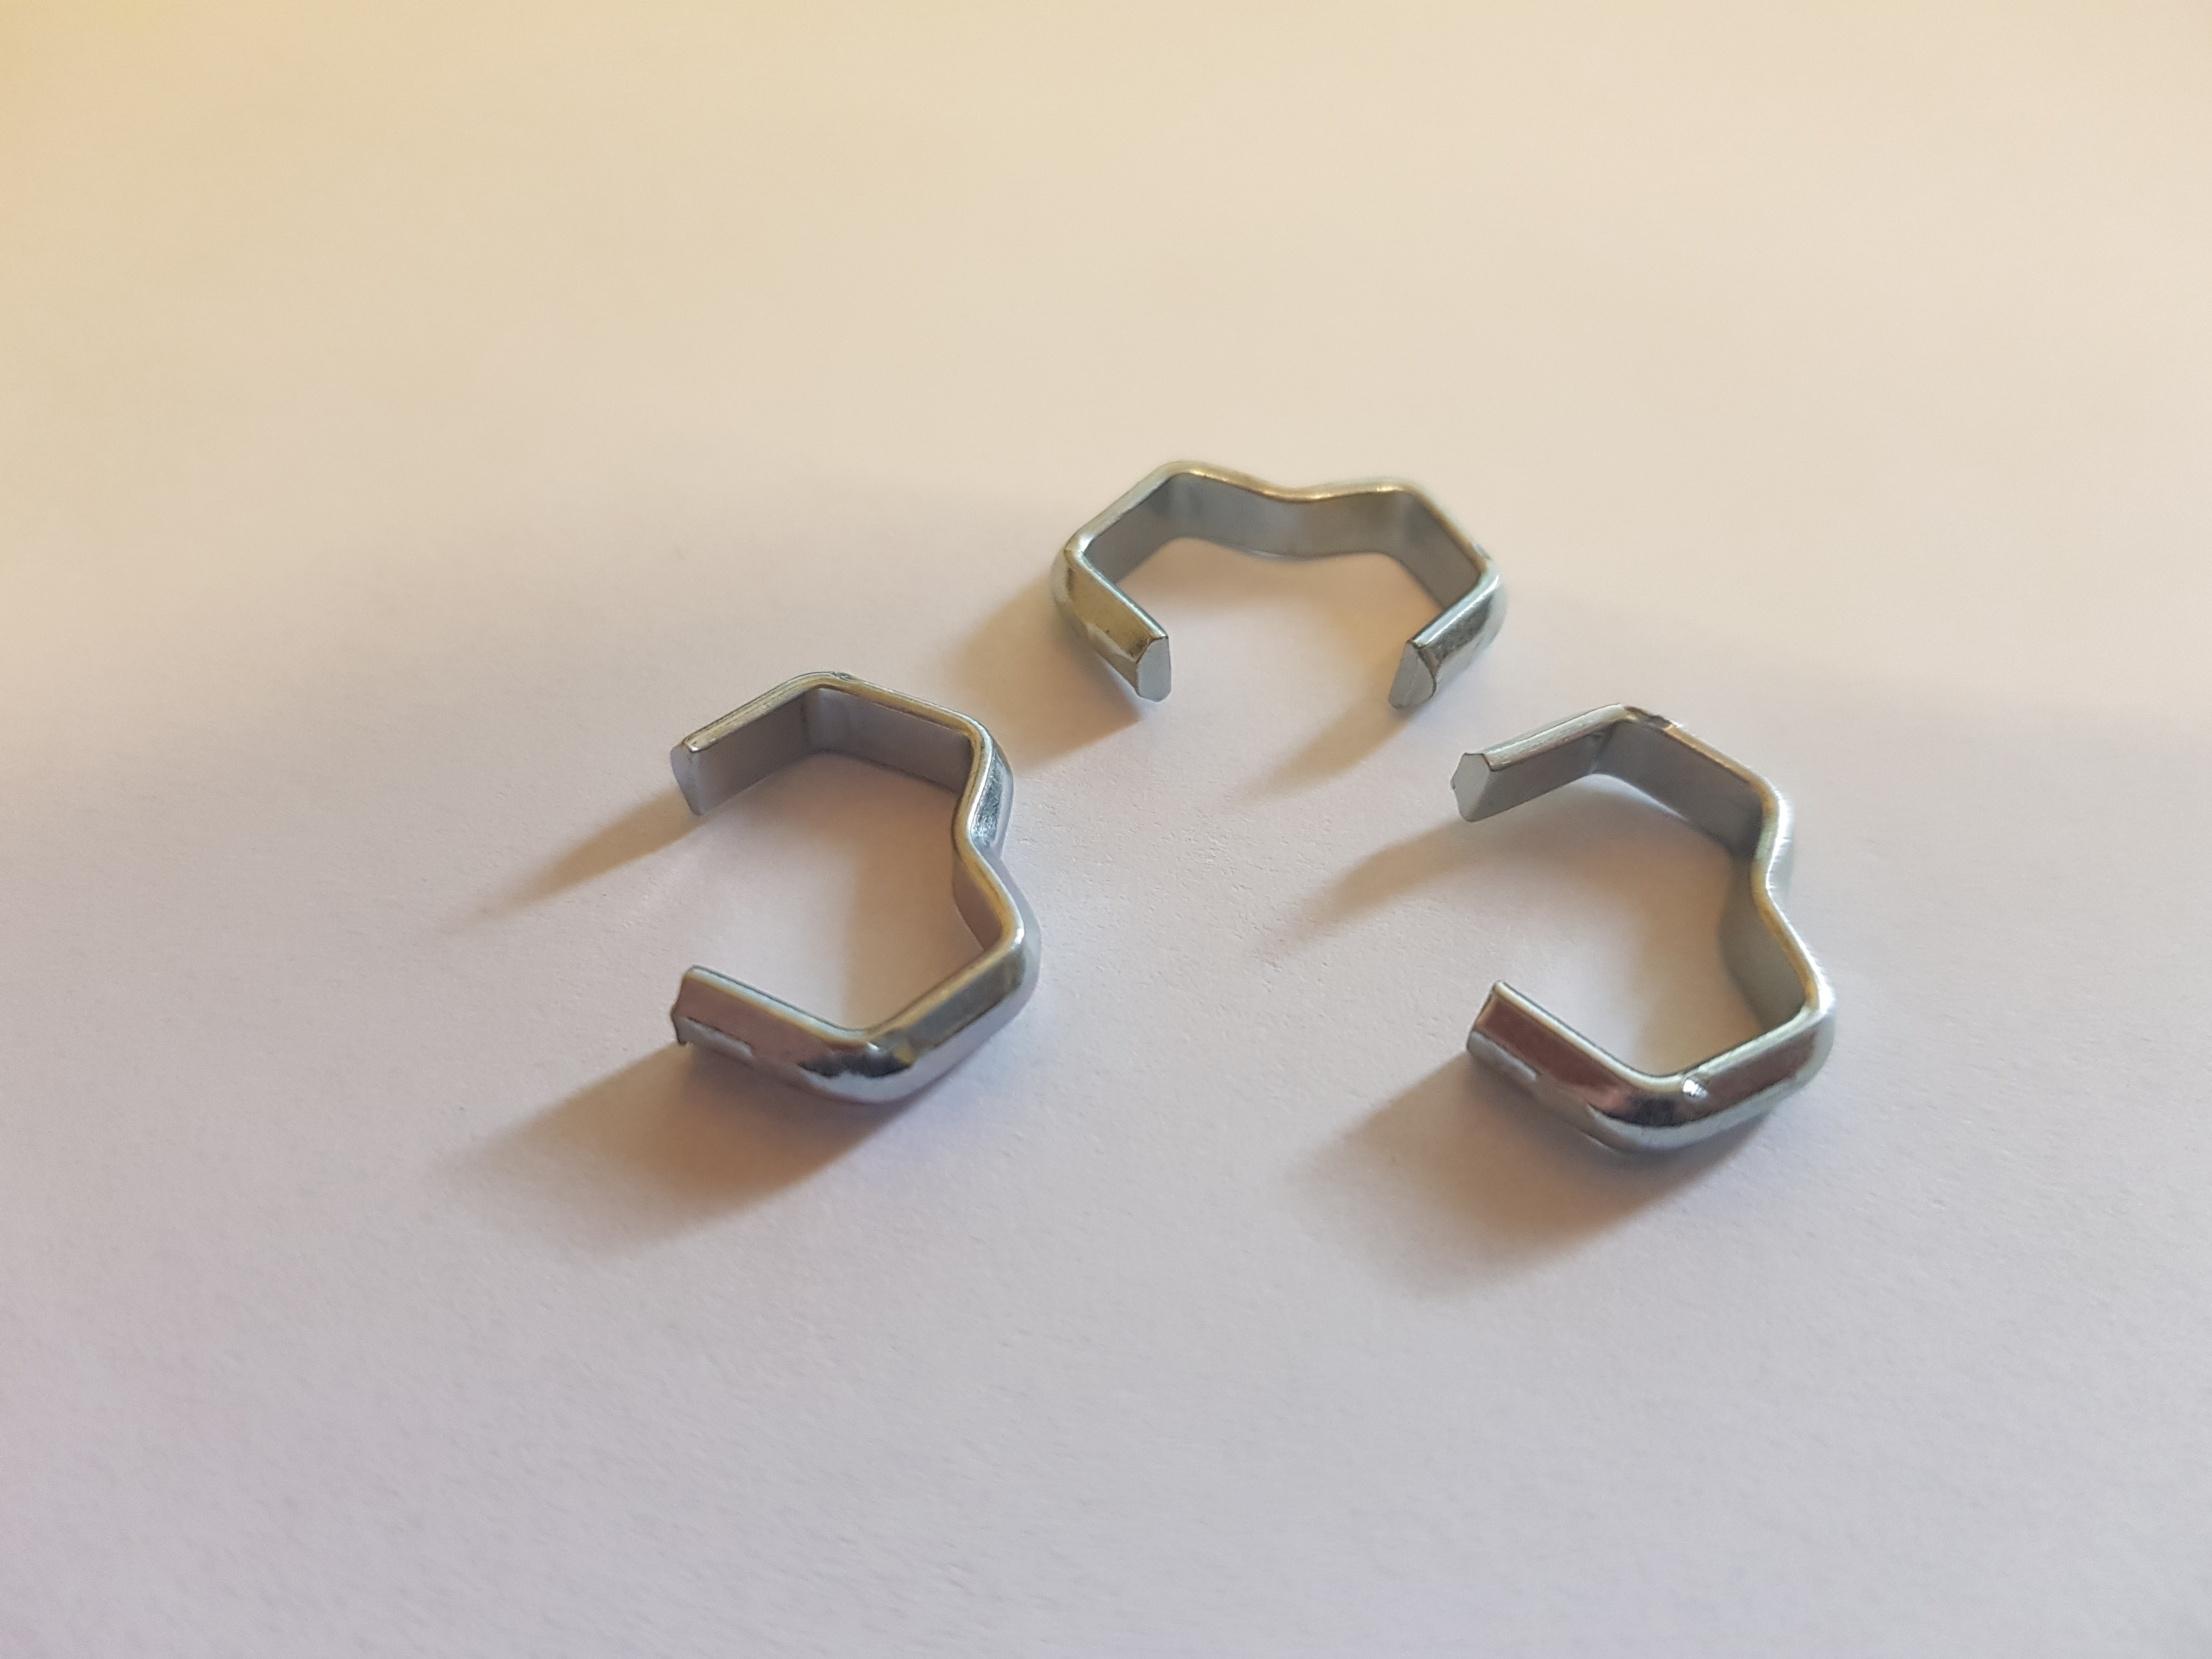 Stainless Steel Hog Rings